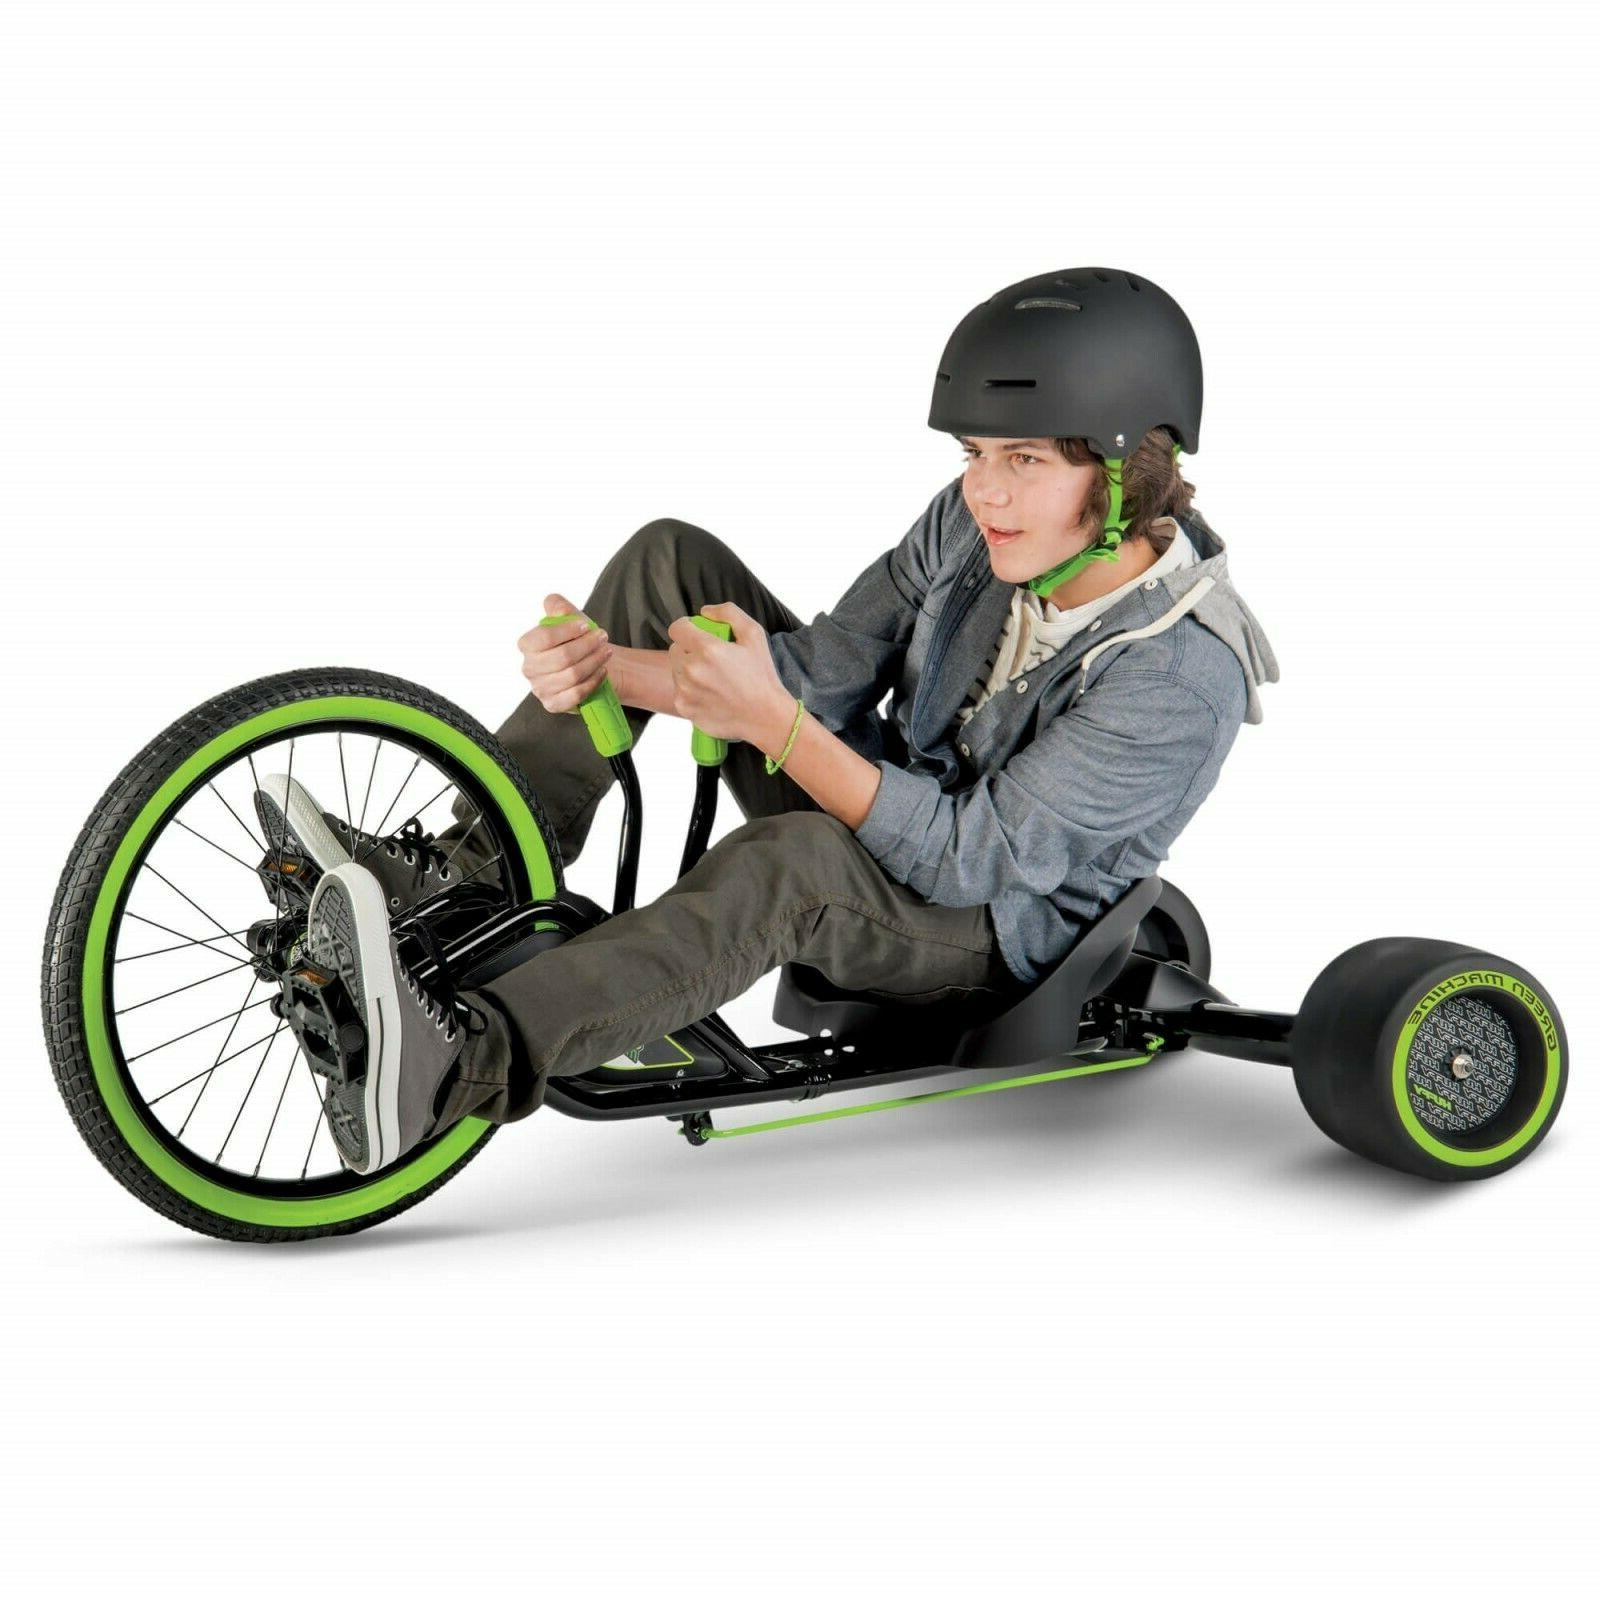 Huffy Green Machine RT 20-Inch 3-Wheel Tricycle Kids Outdoor